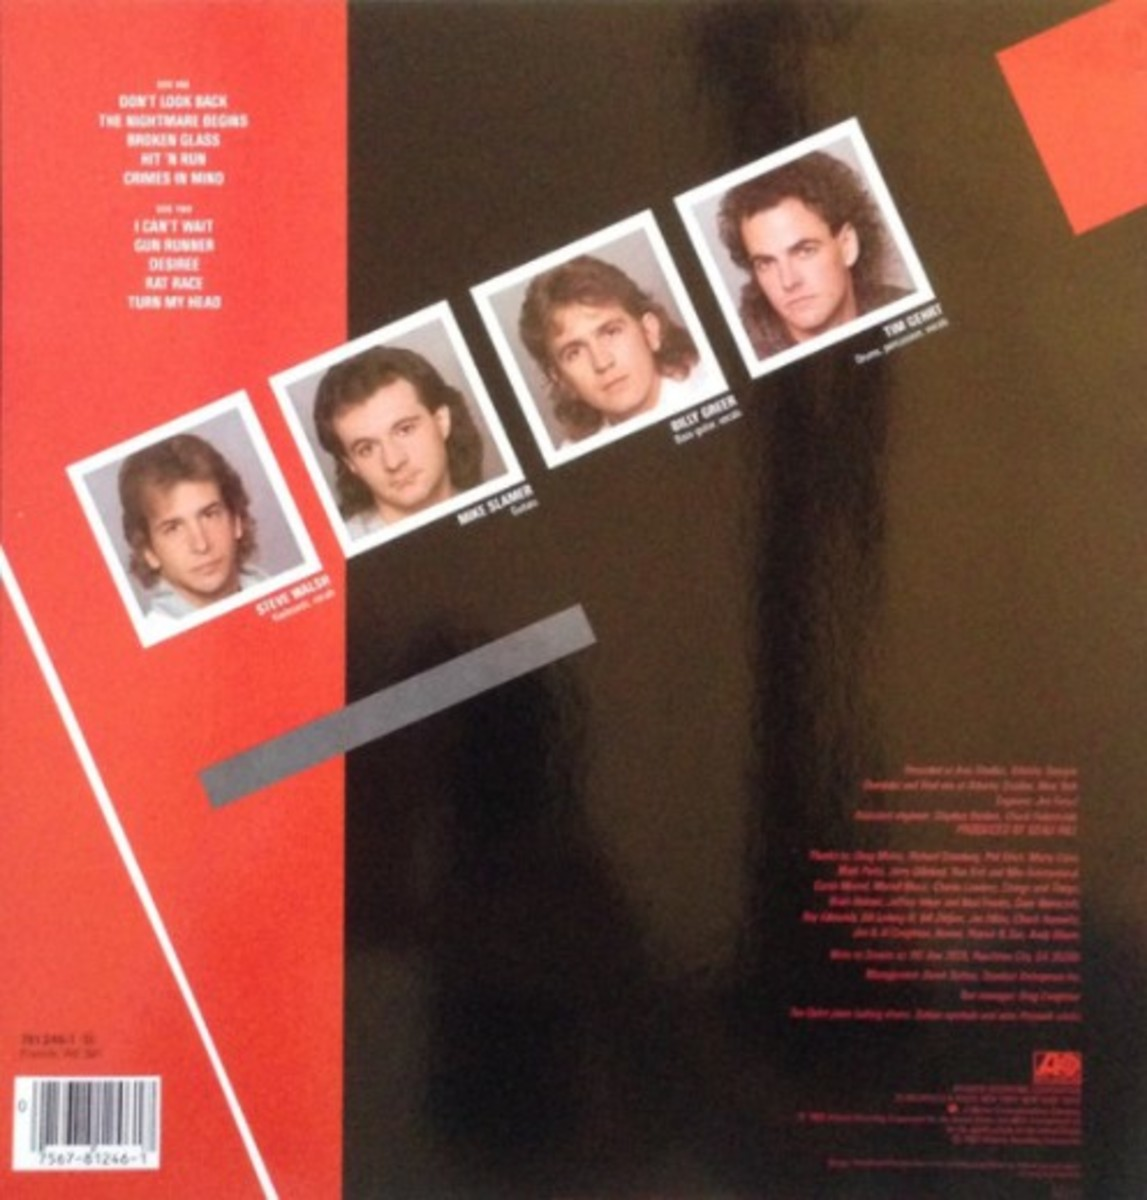 """Streets' second album """"Crimes in Mind"""" liner, 1985, with the original """"Broken Glass"""""""